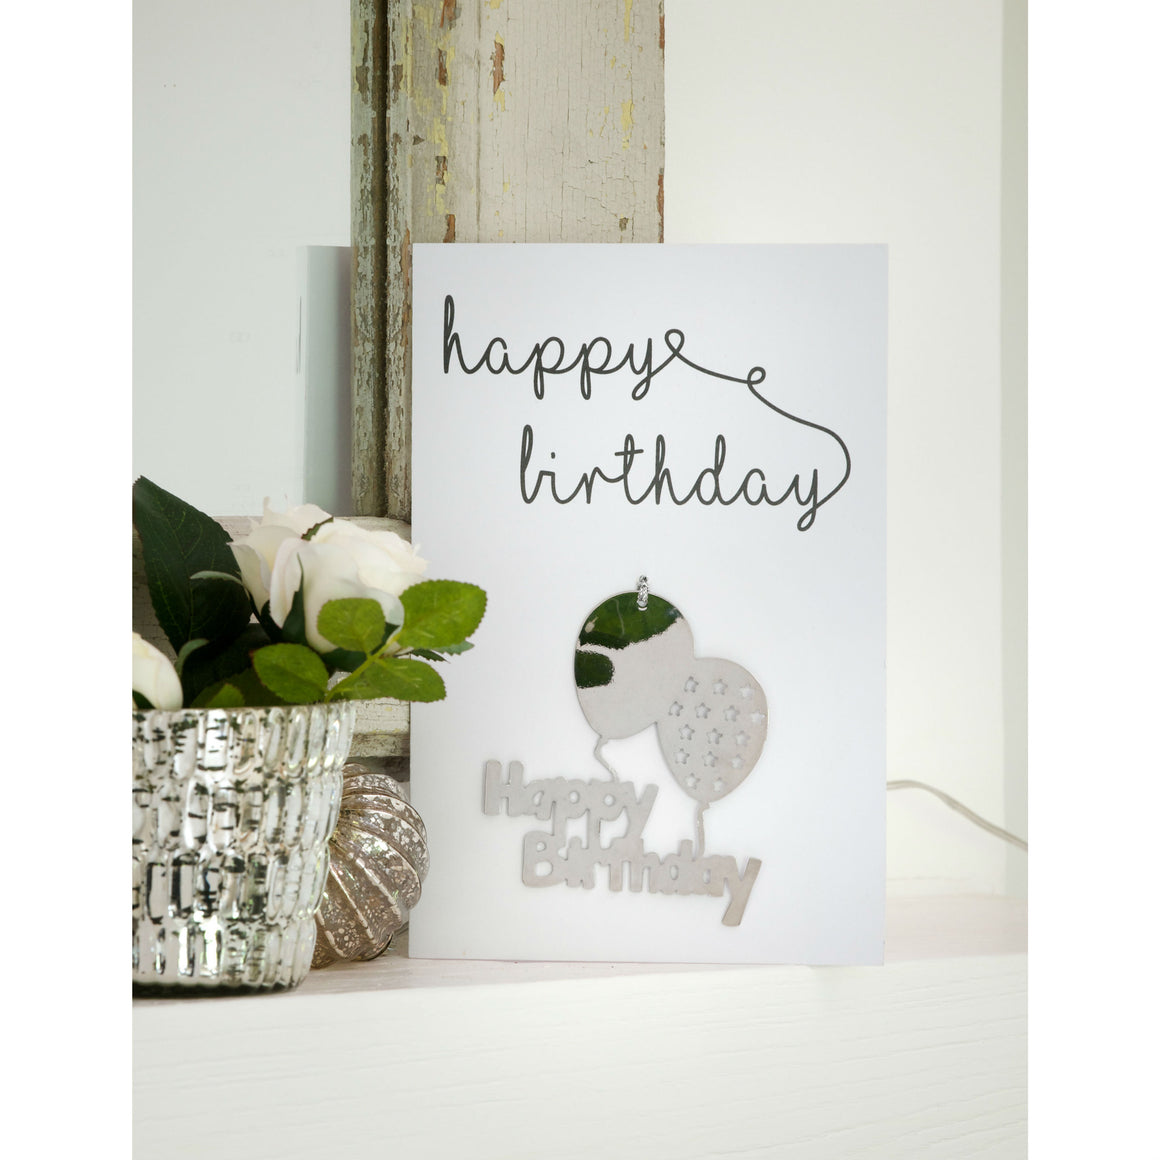 Happy Birthday Greetings Card and Keepsake - The Love Trees